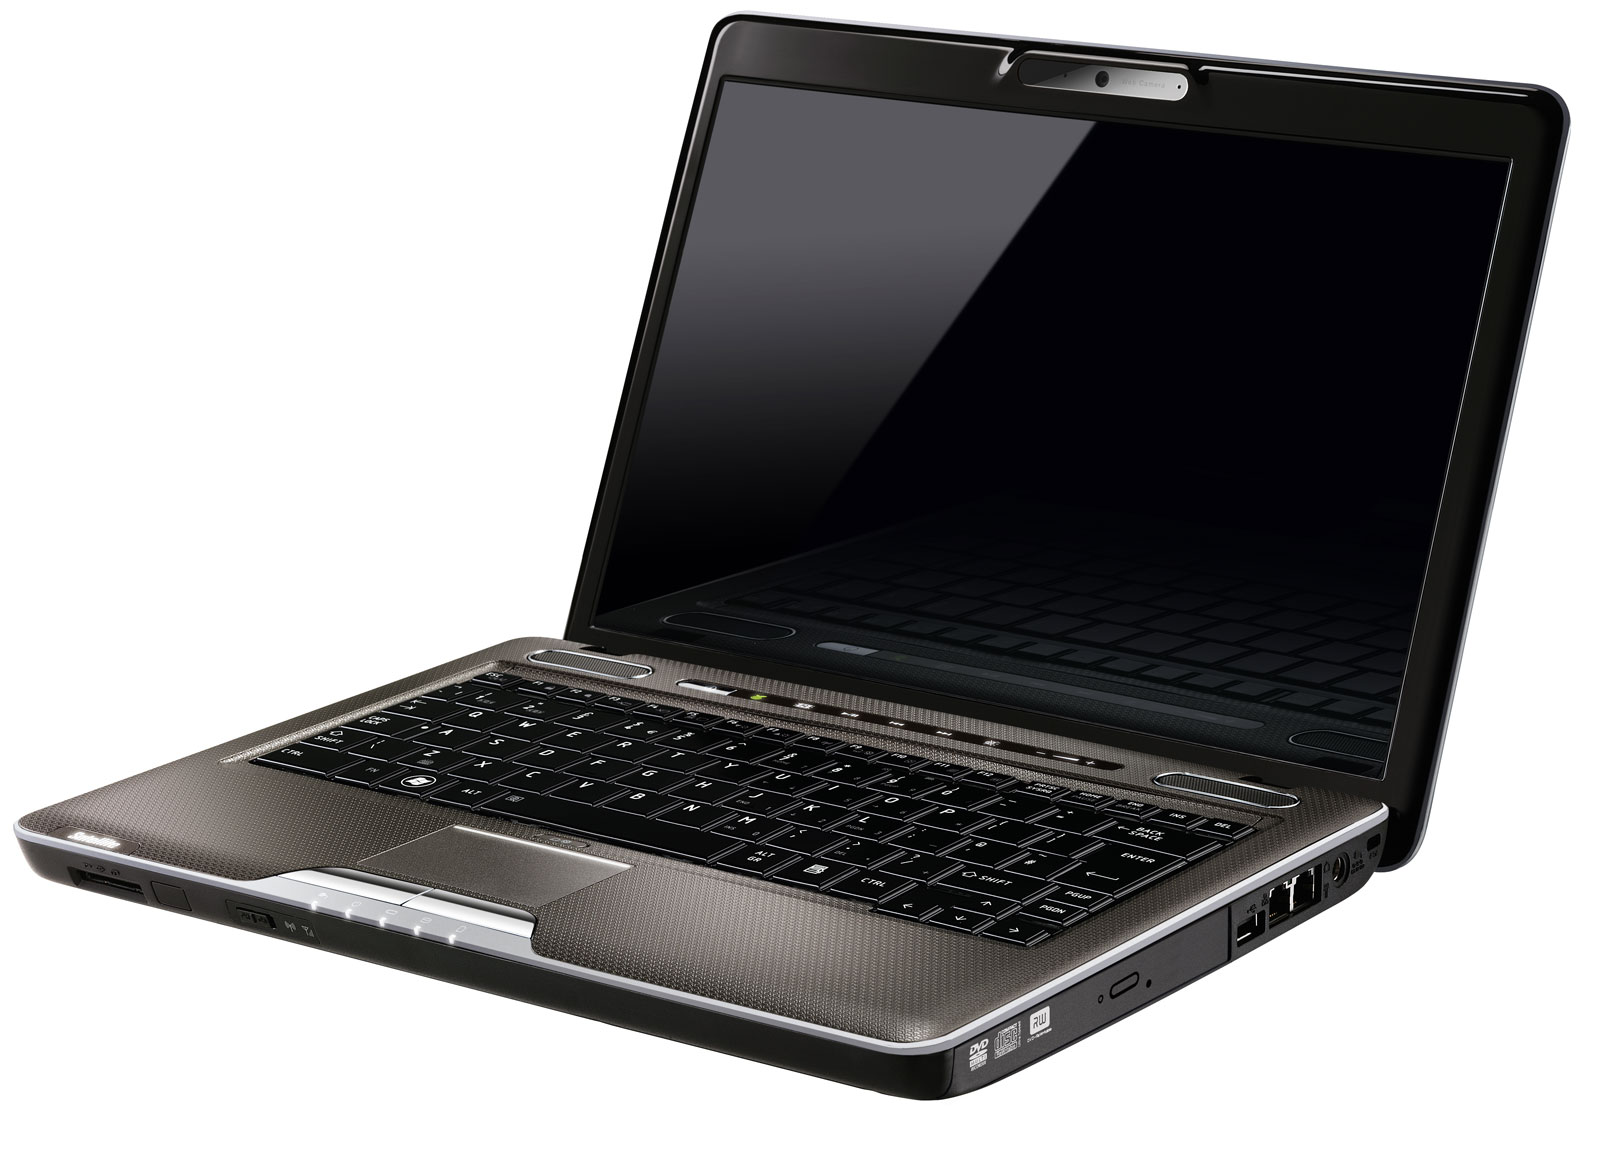 Toshiba Satellite U500 ATI Graphics 64x